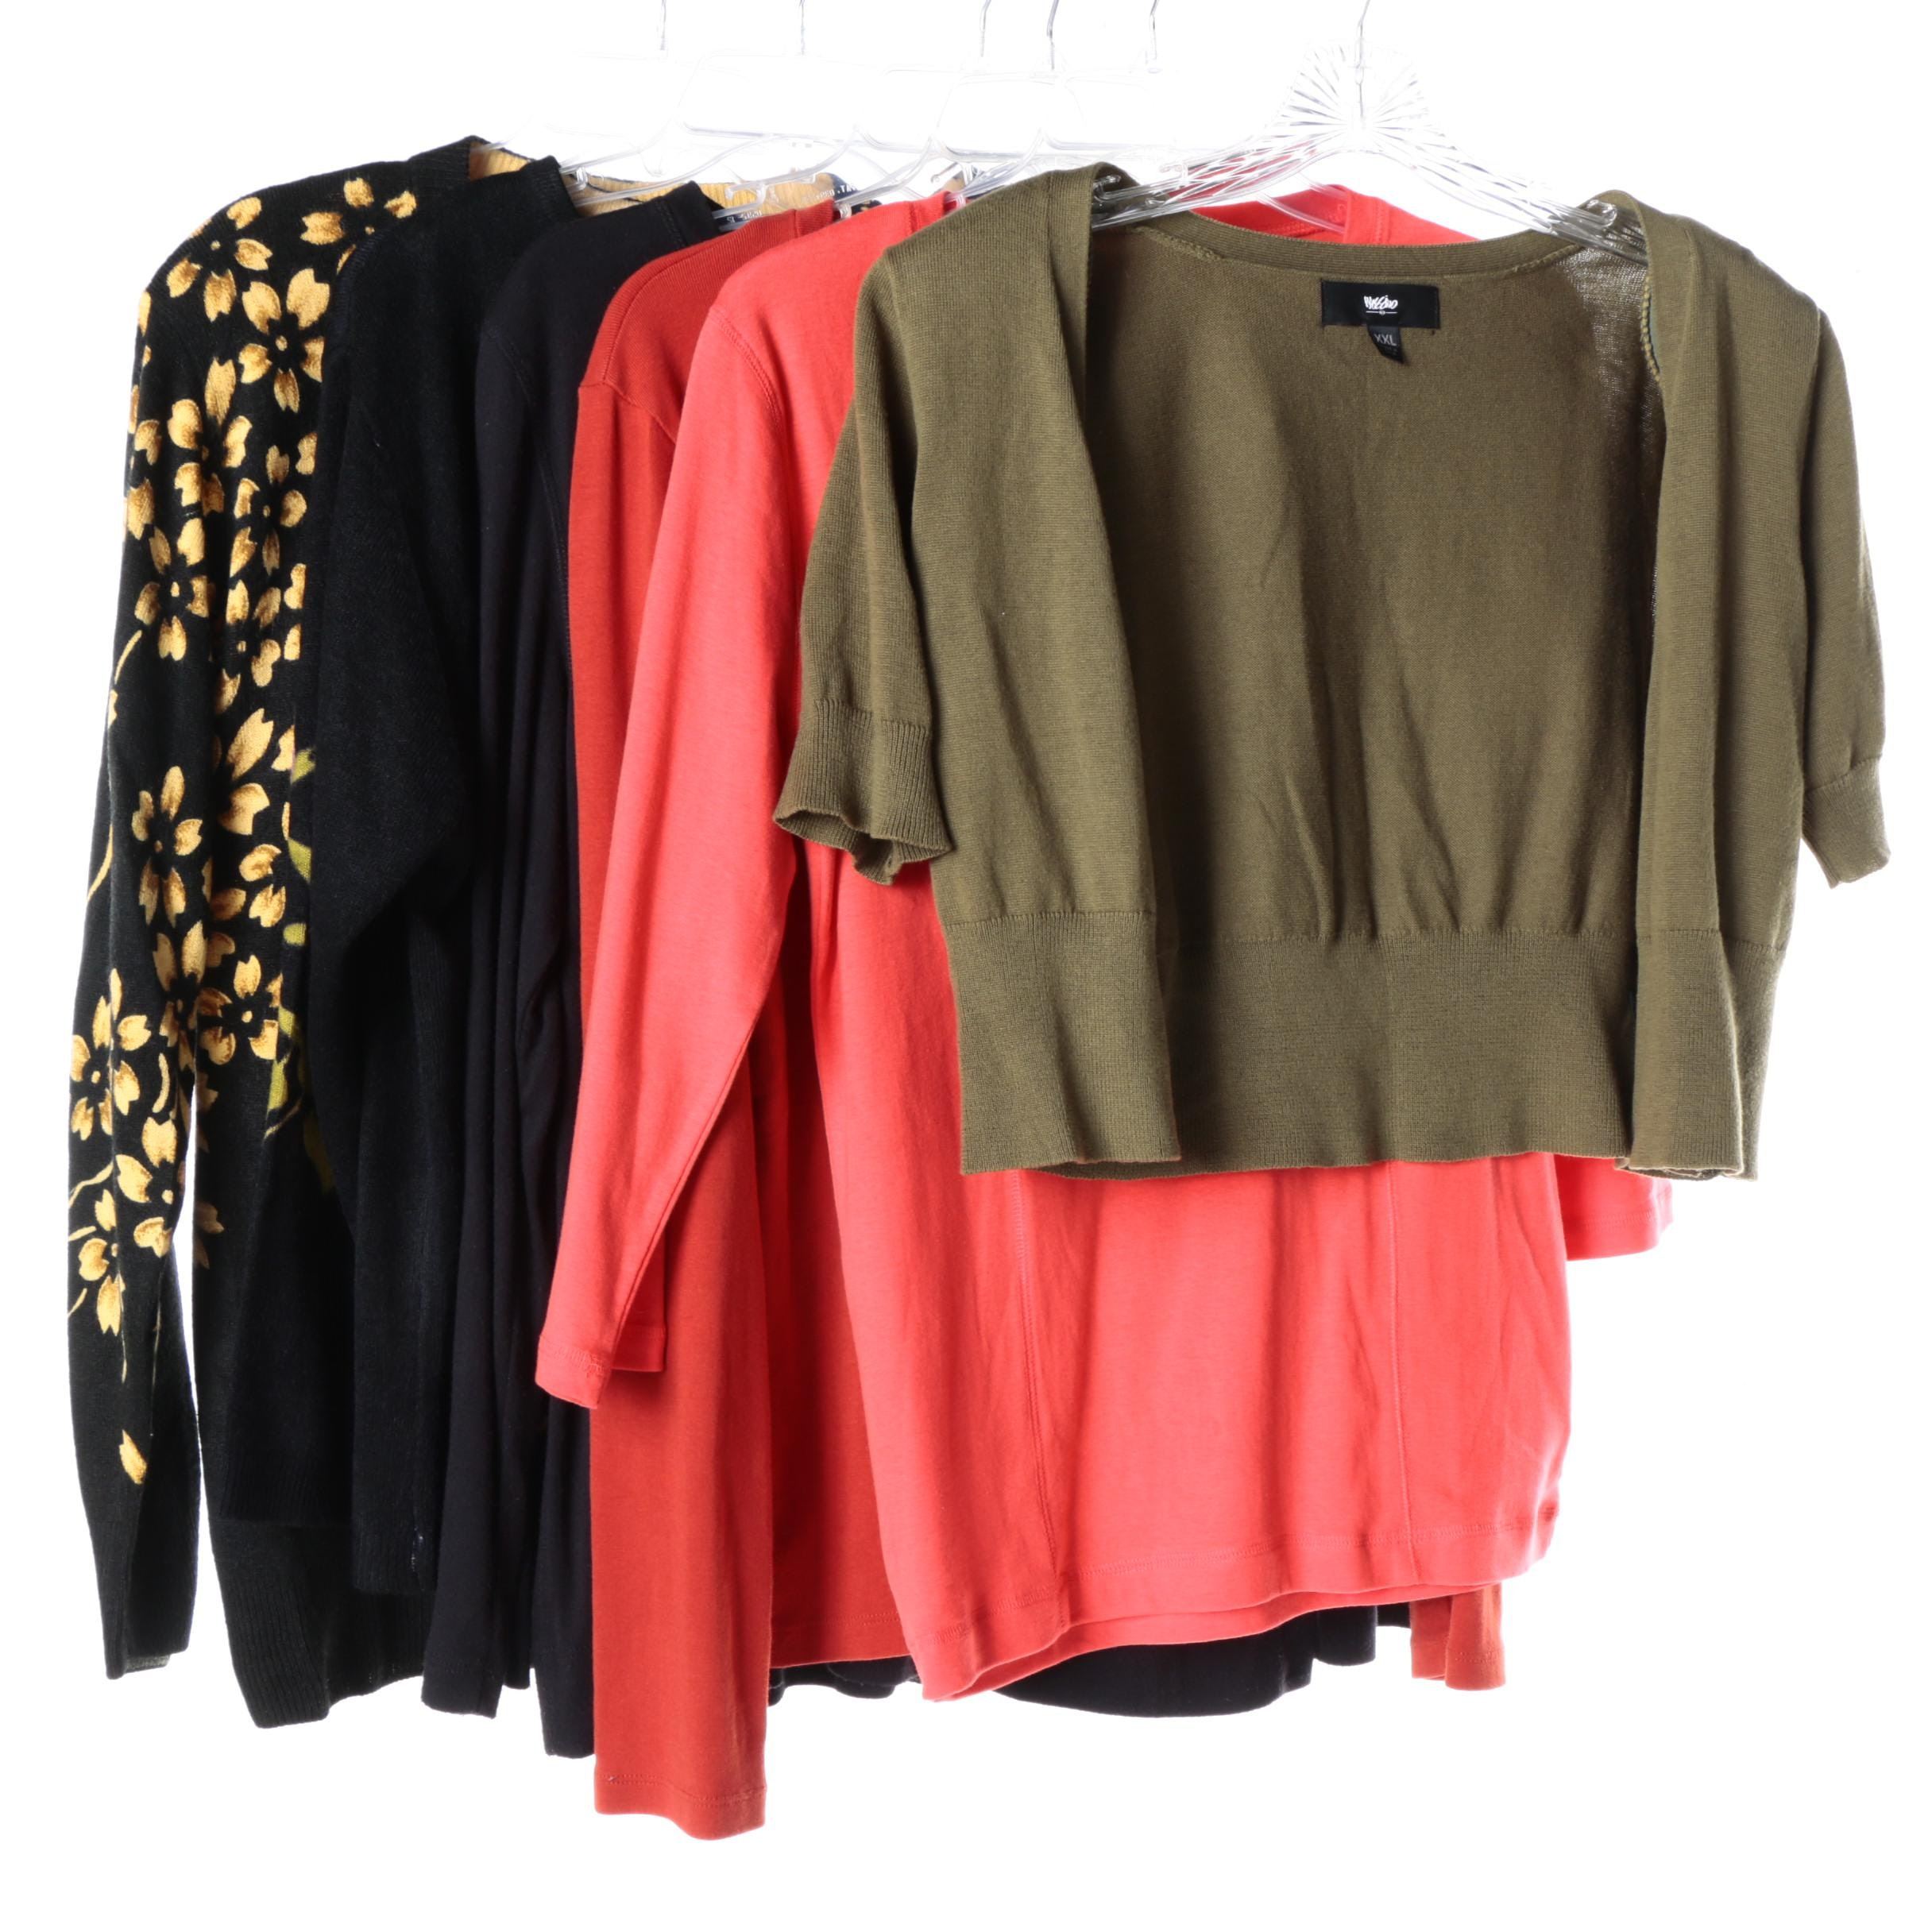 Women's Sweaters and Shirts Including Simply Vera Vera Wang and Mossimo